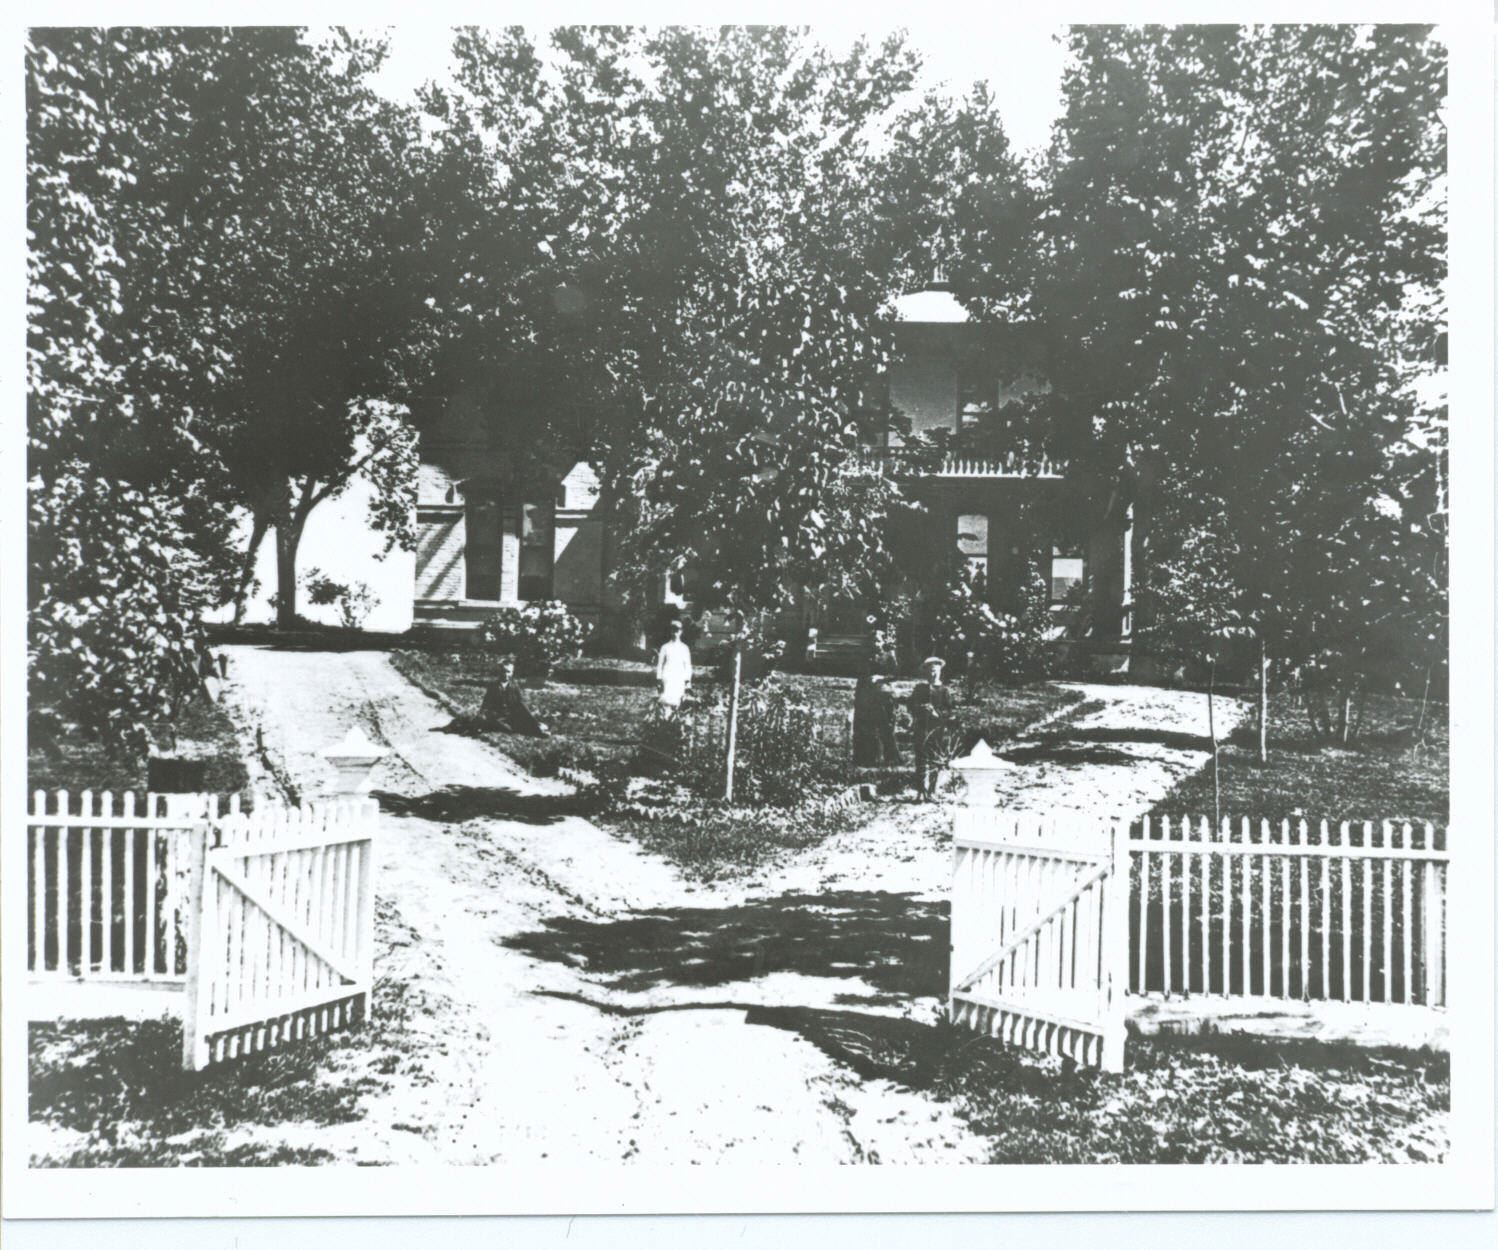 Historic photo of Richards-Hart Estate from front gate